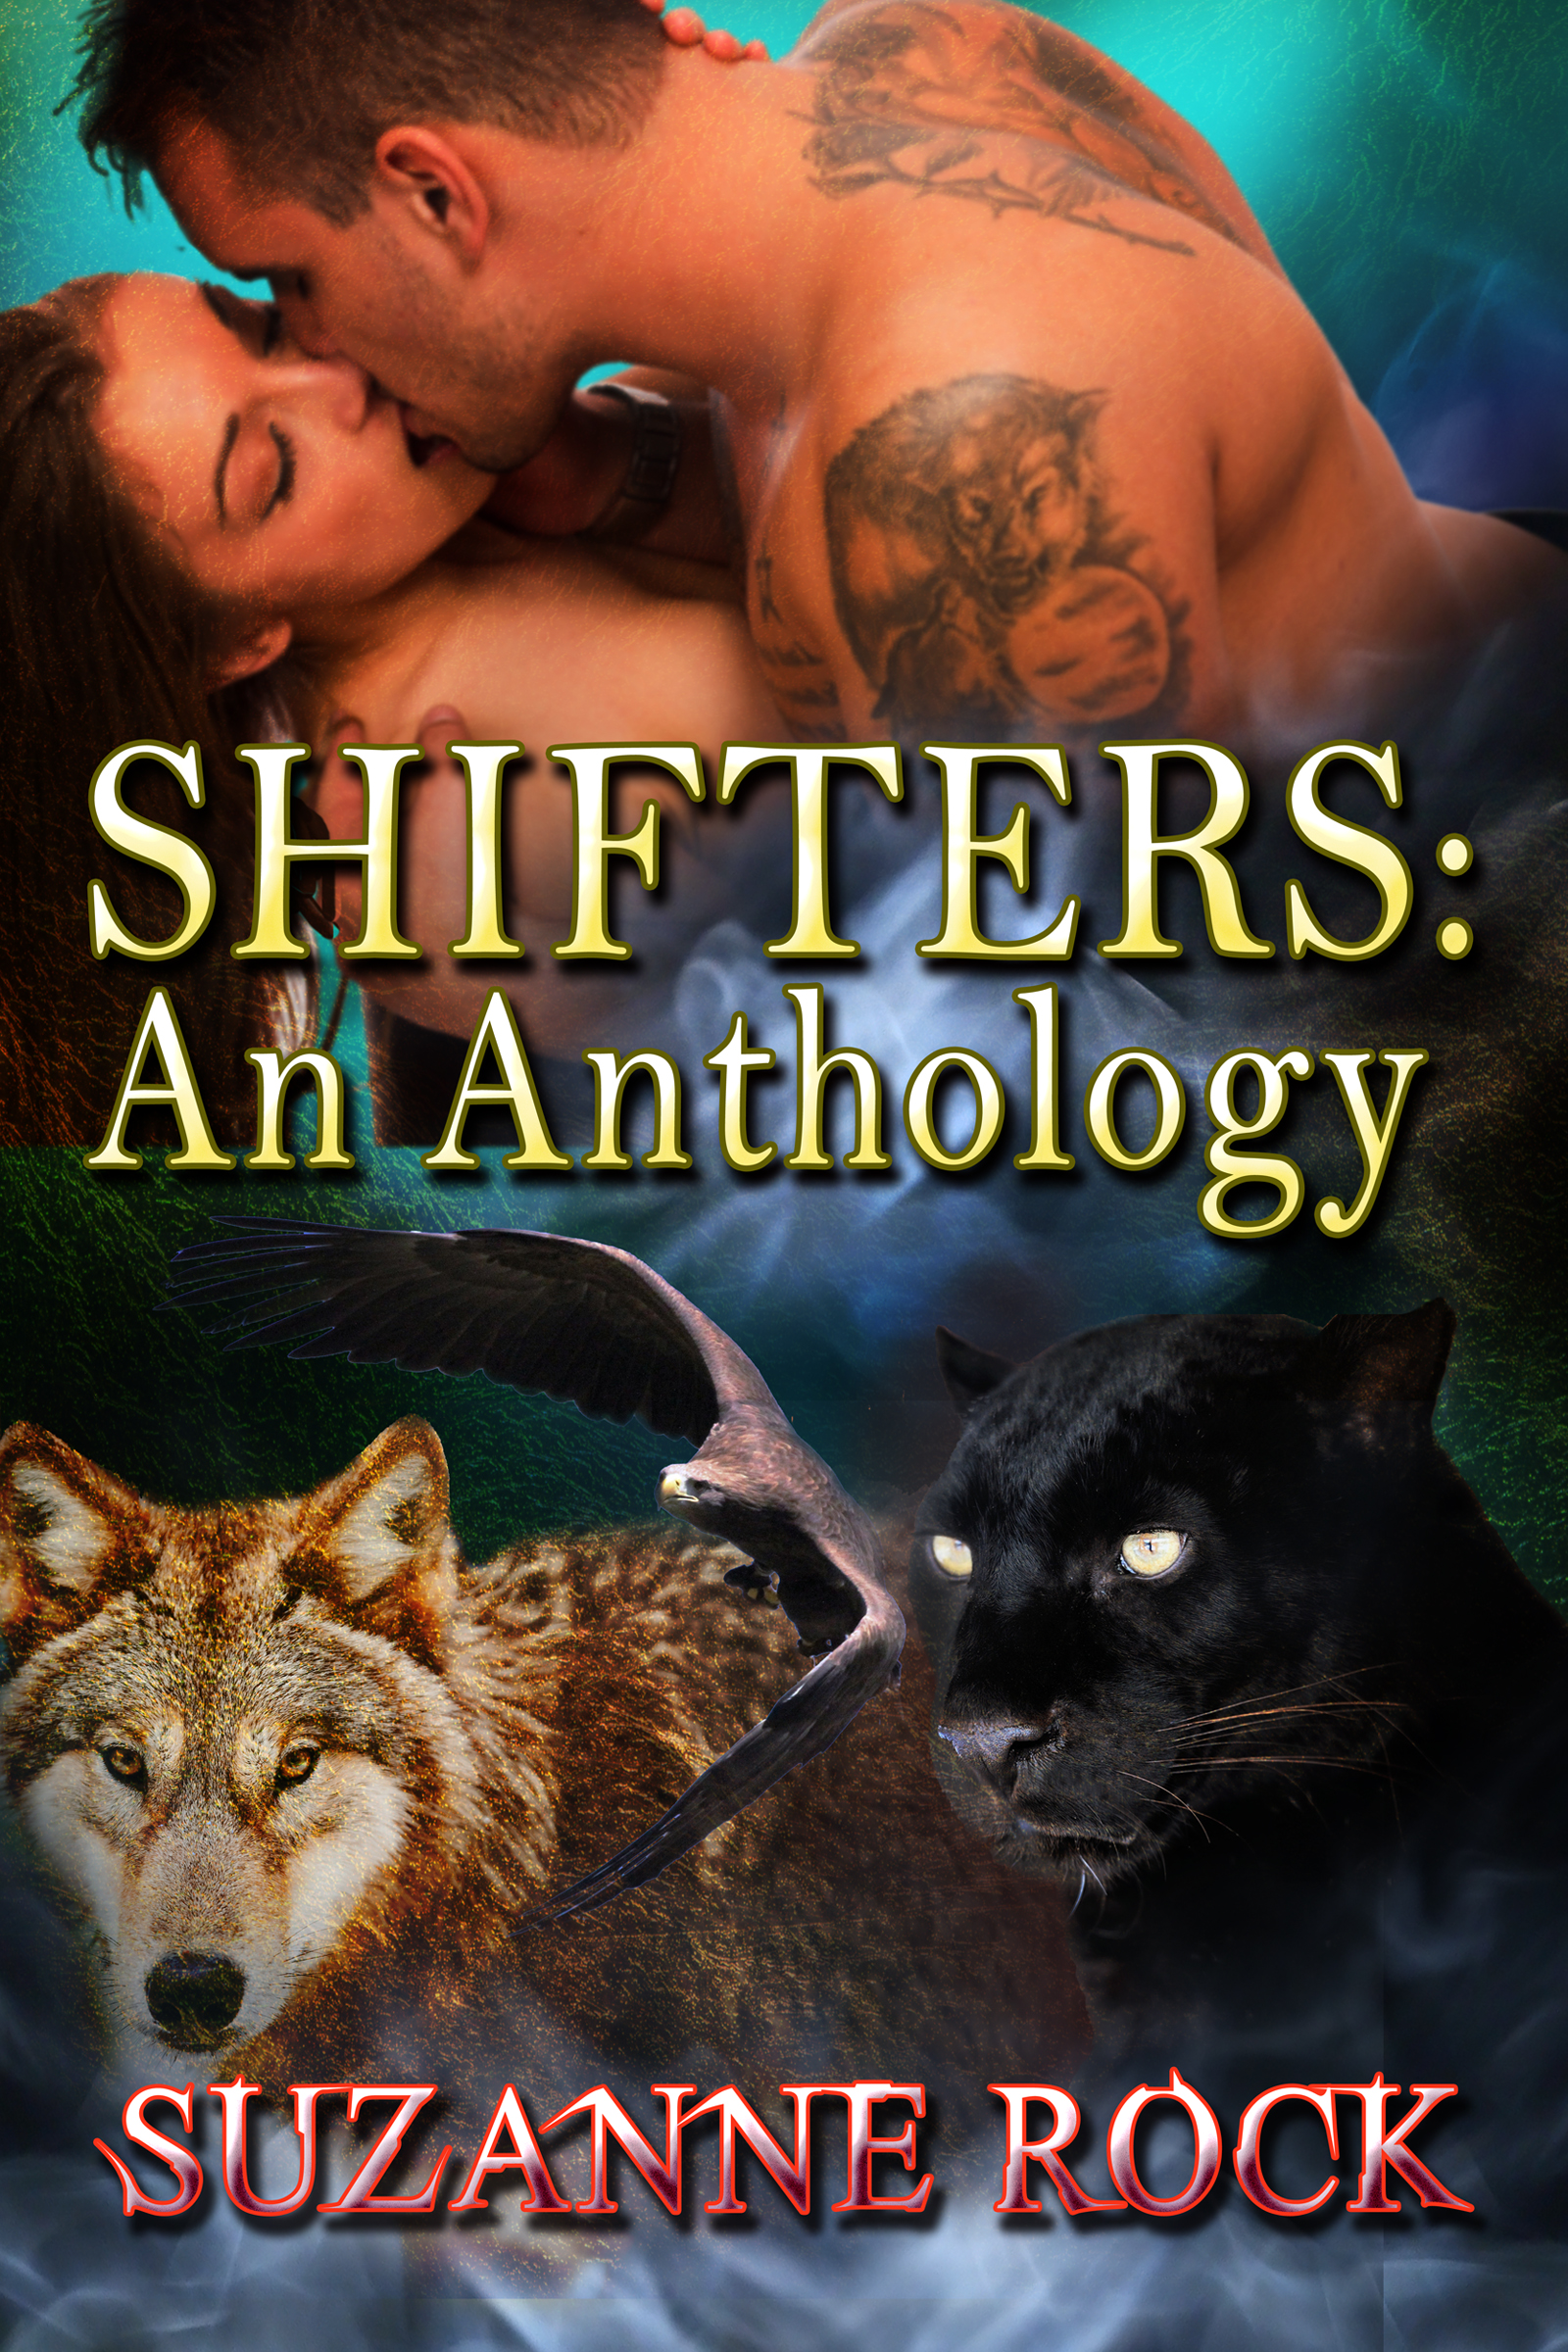 082314_SR-Shifters-anthology-Smashwords